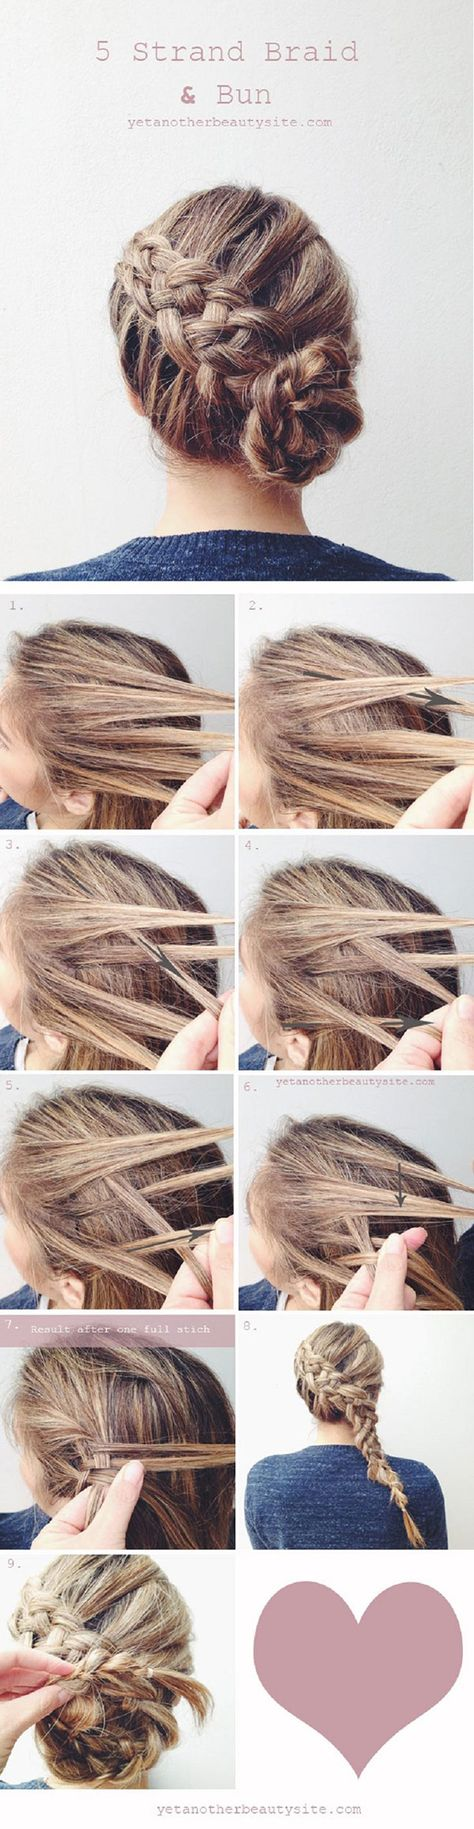 easy braided bun hairstyles to try asap face easy and hair style